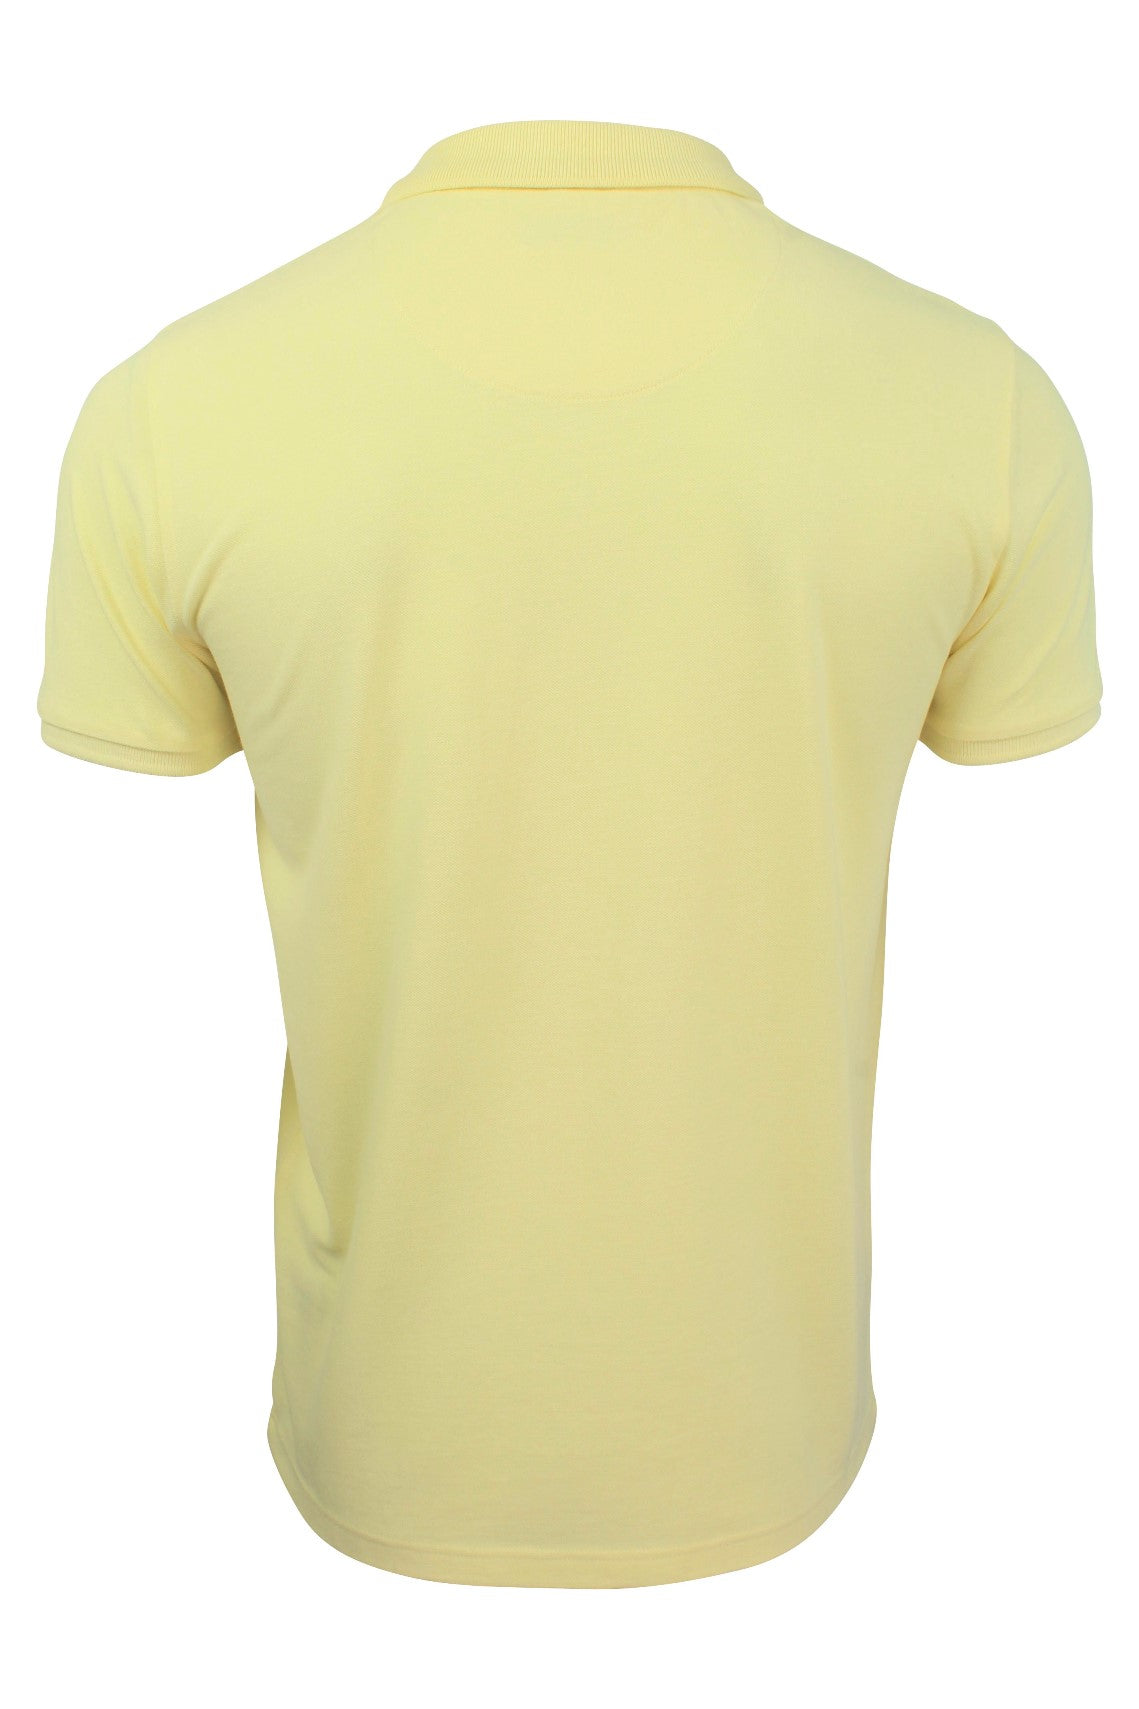 Xact Mens Pique Polo link Short Sleeved Golf Casual_03_Xp1025_Yellow